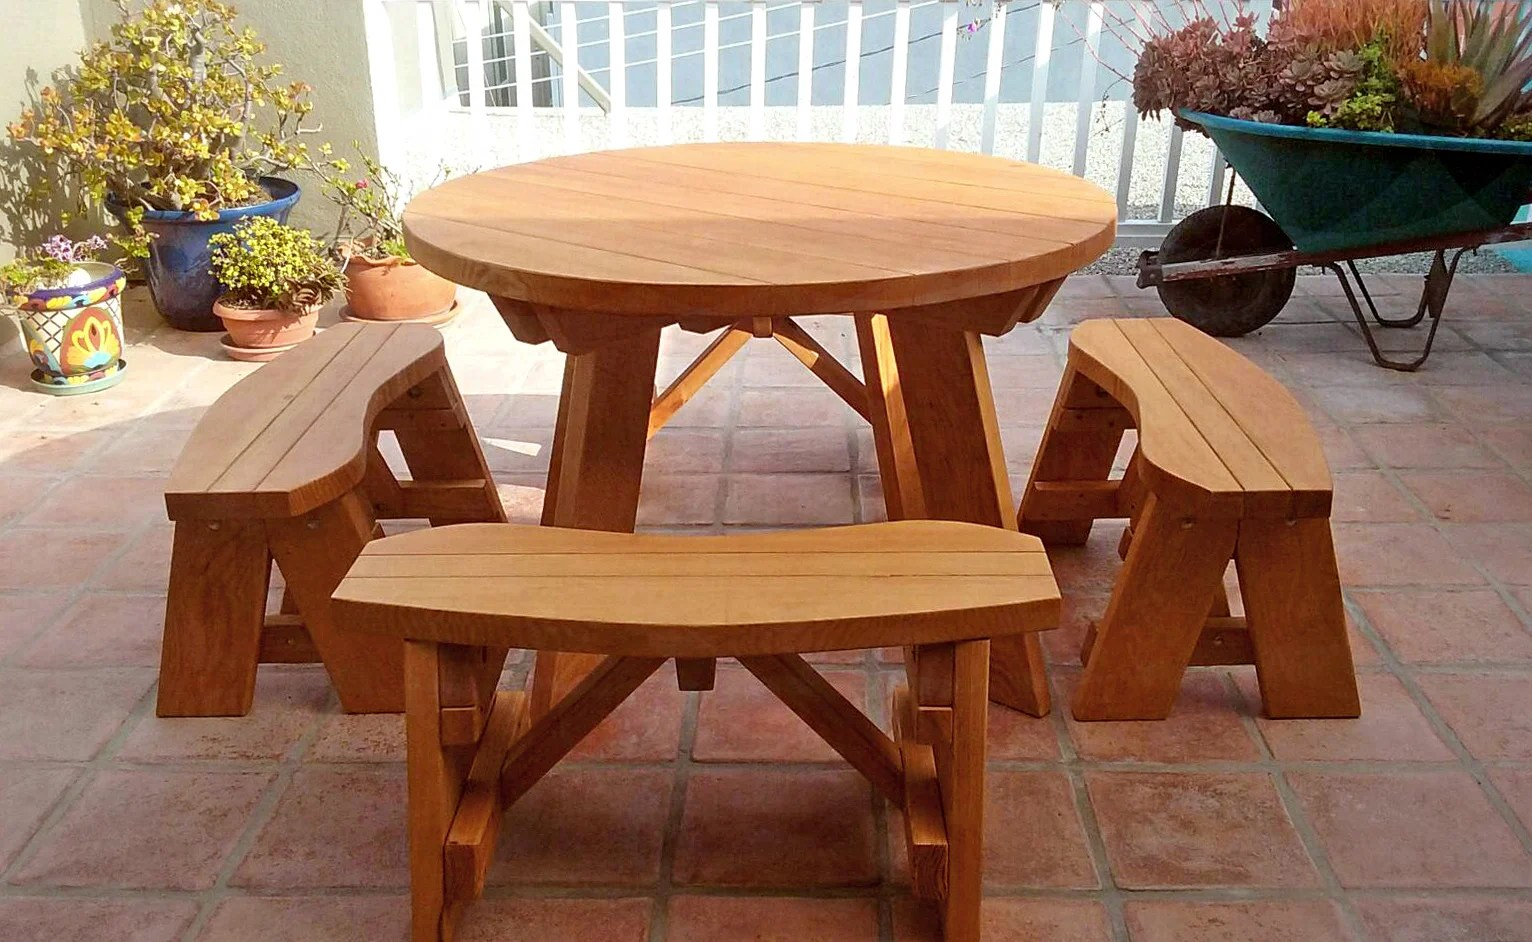 Wooden Bench Table Round Wooden Picnic Table With Detached Benches